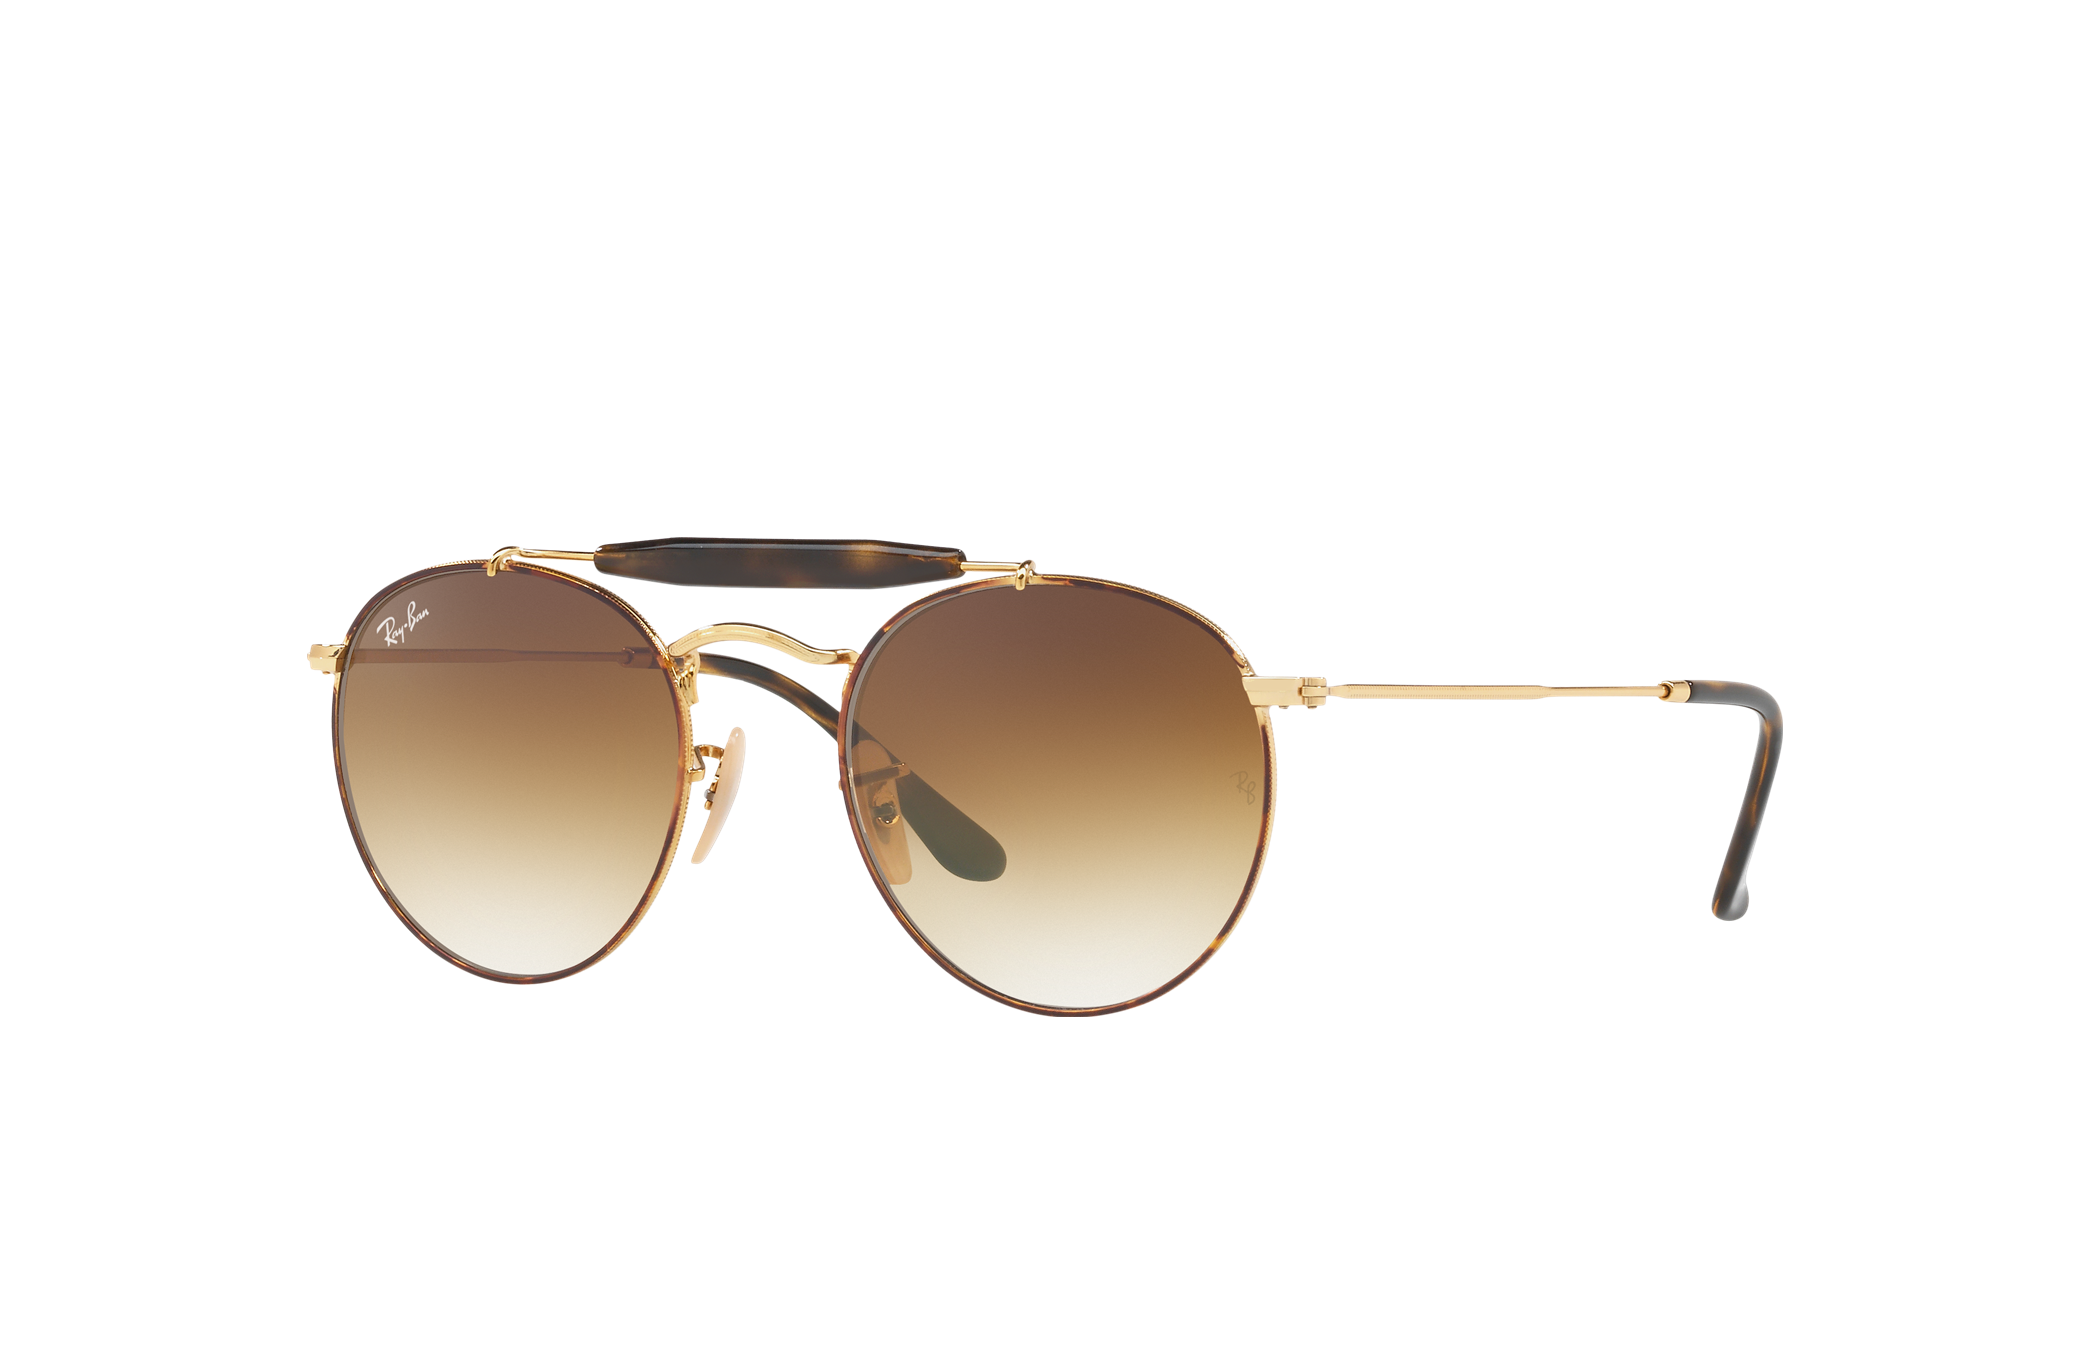 Ray-Ban Rb3747 Gold, Brown Lenses - RB3747